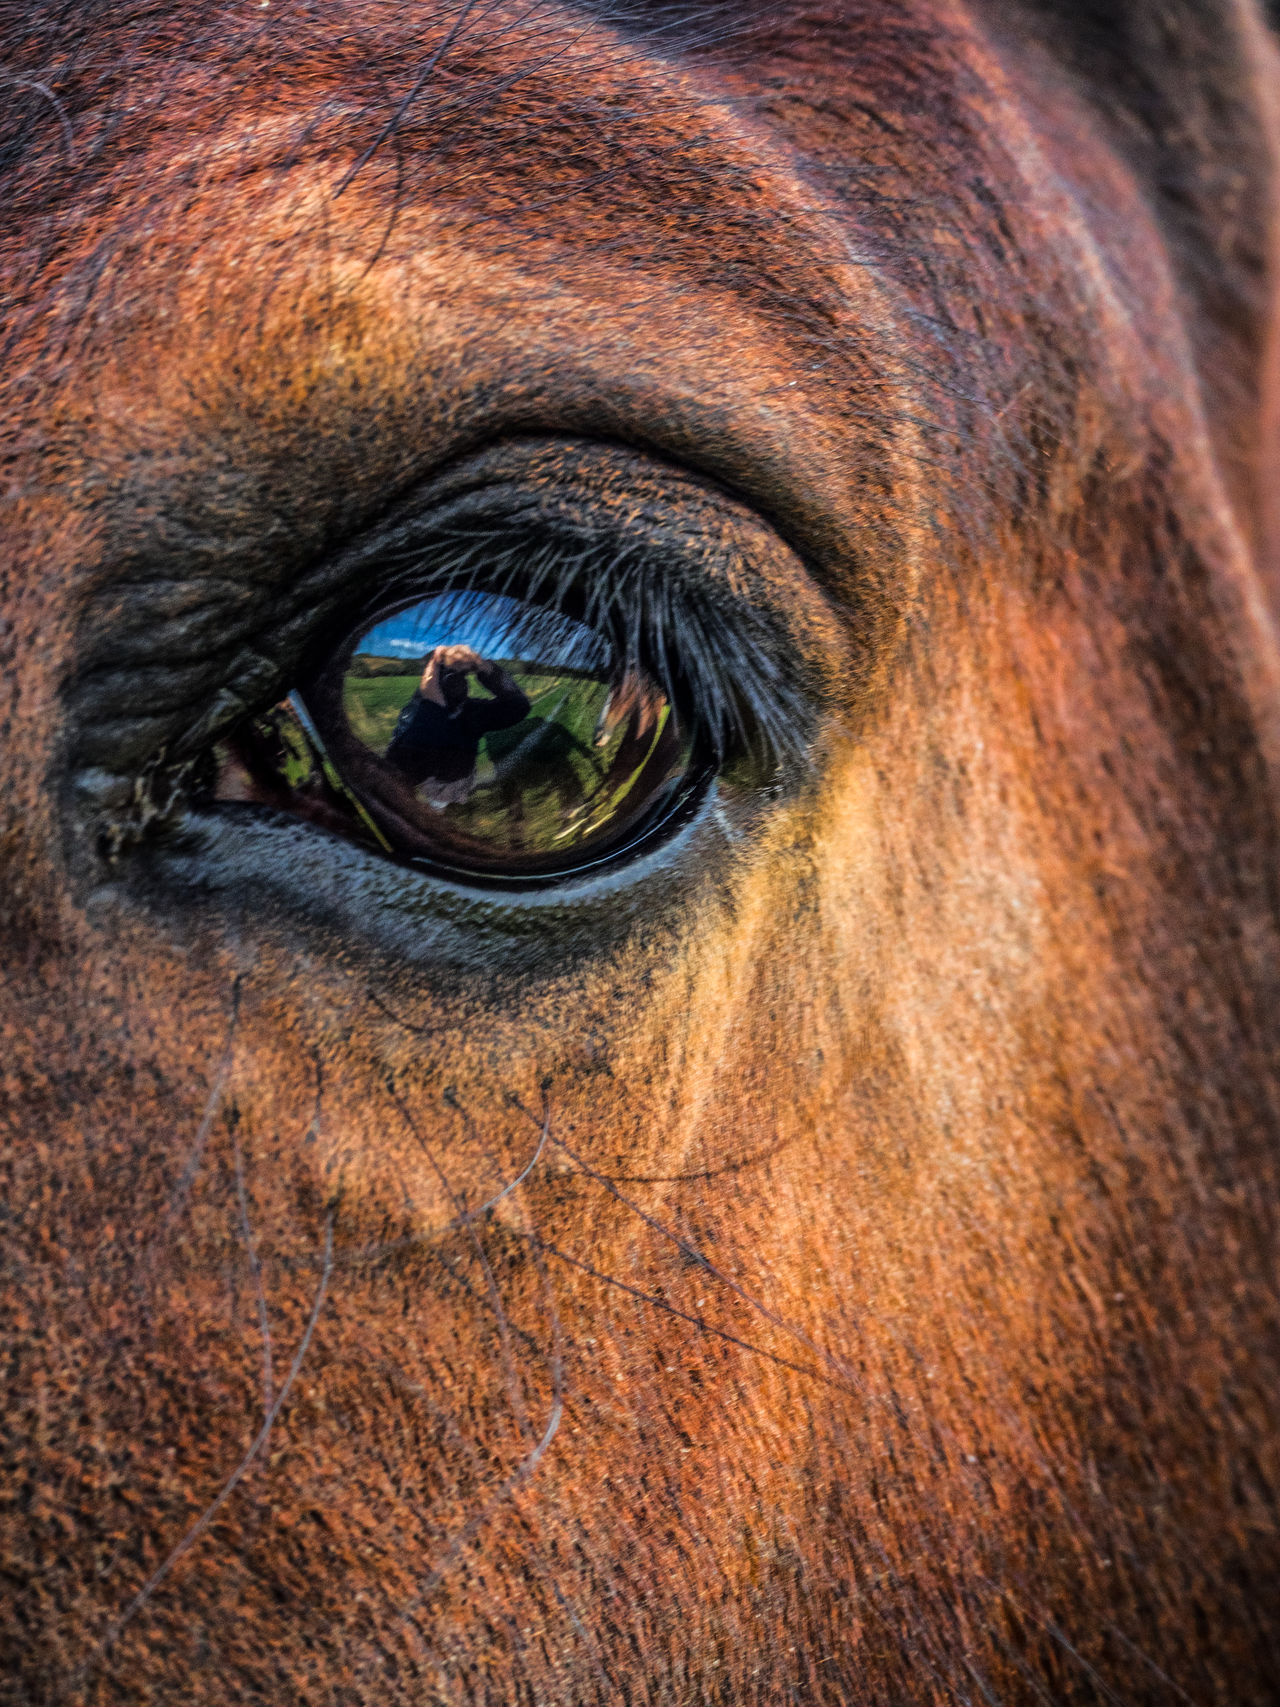 One eye sees, the other feels. Paul Klee. Animal Body Part Animal Eye Animal Hair Backgrounds Close-up Domestic Animals Extreme Close Up Extreme Close-up Focus On Foreground Full Frame Horse Livestock Looking No People One Animal Part Of Portrait Reflection